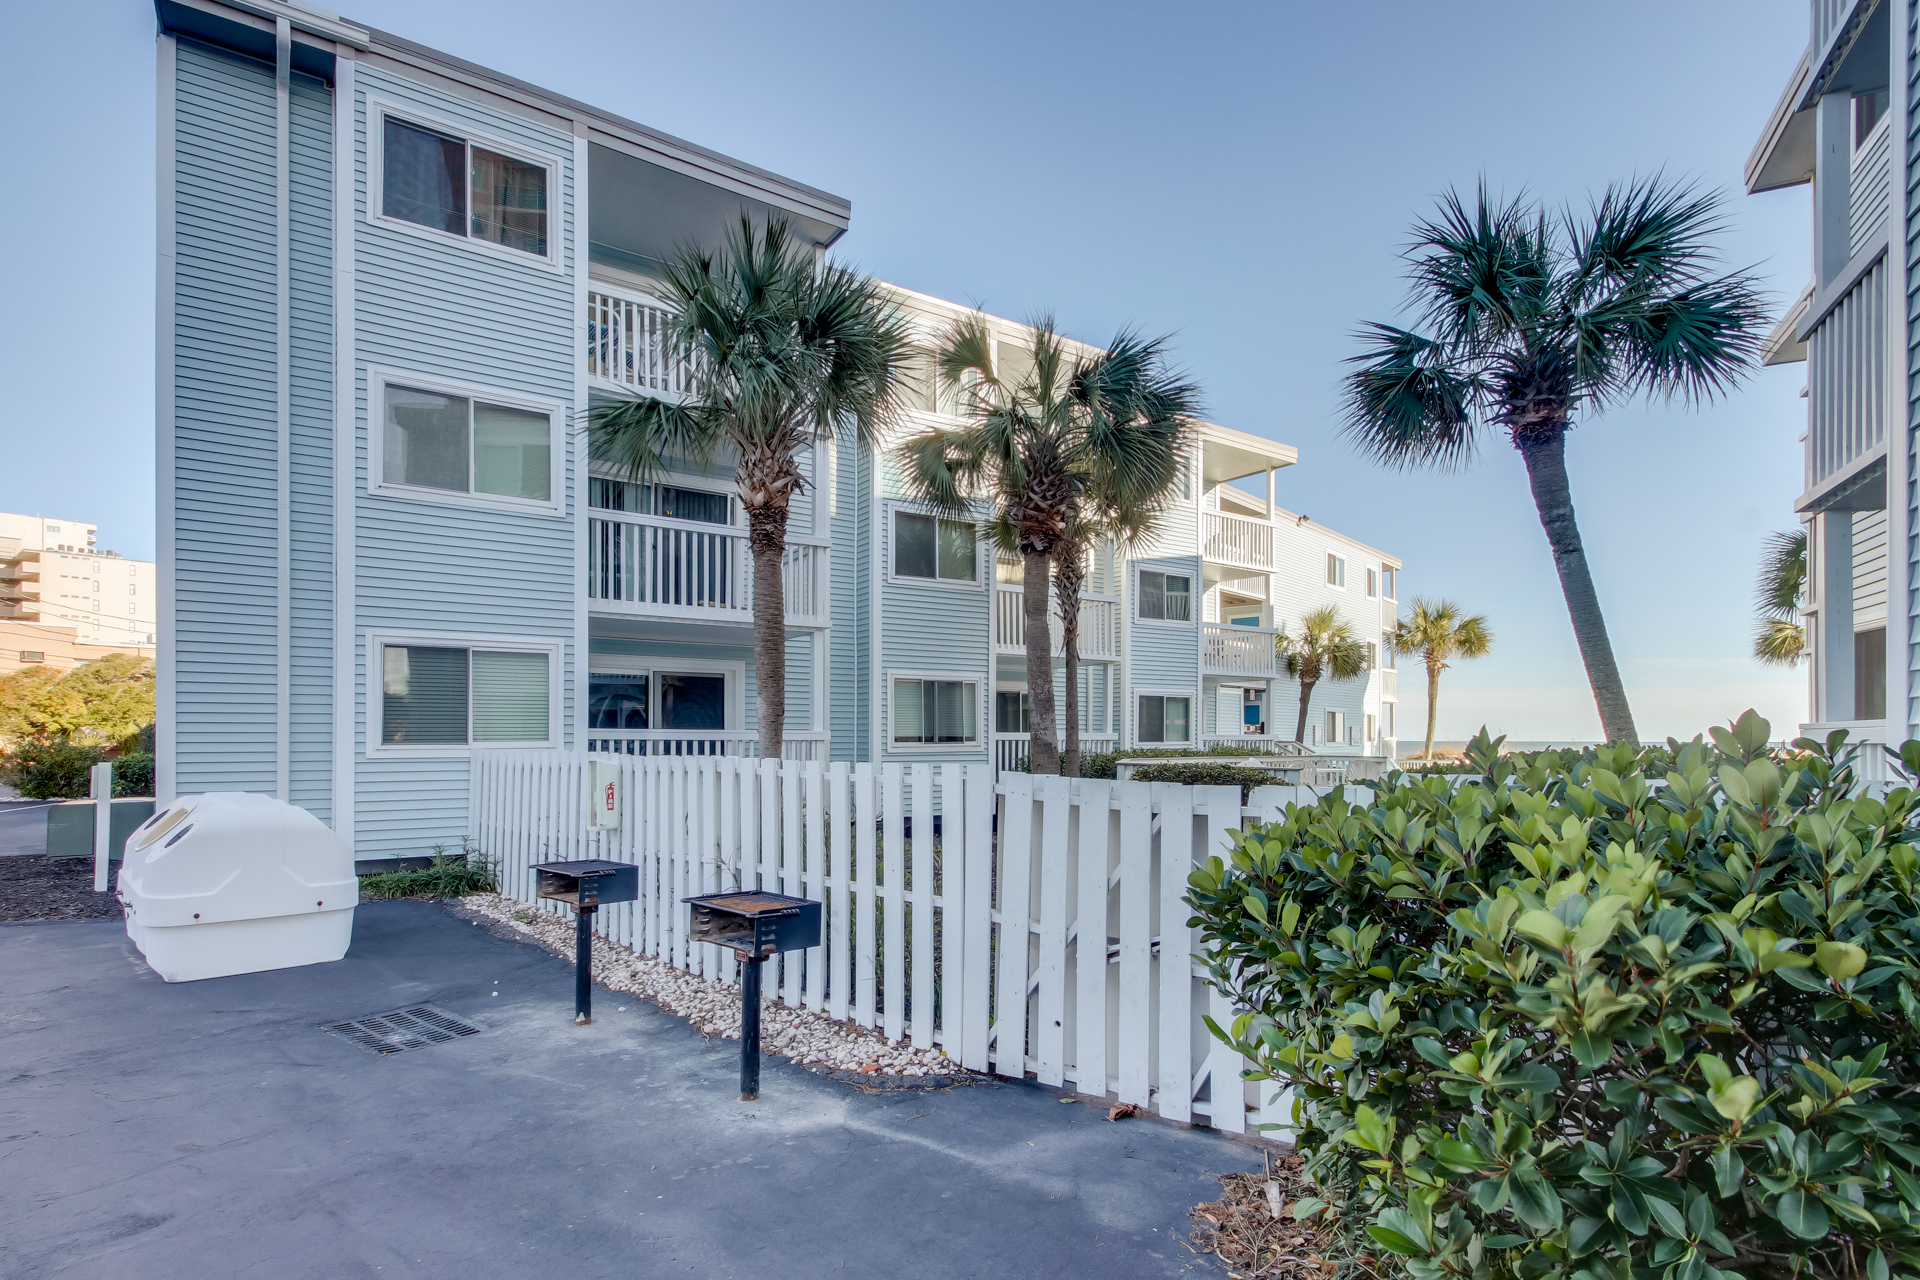 Myrtle Beach Condo Property Taxes